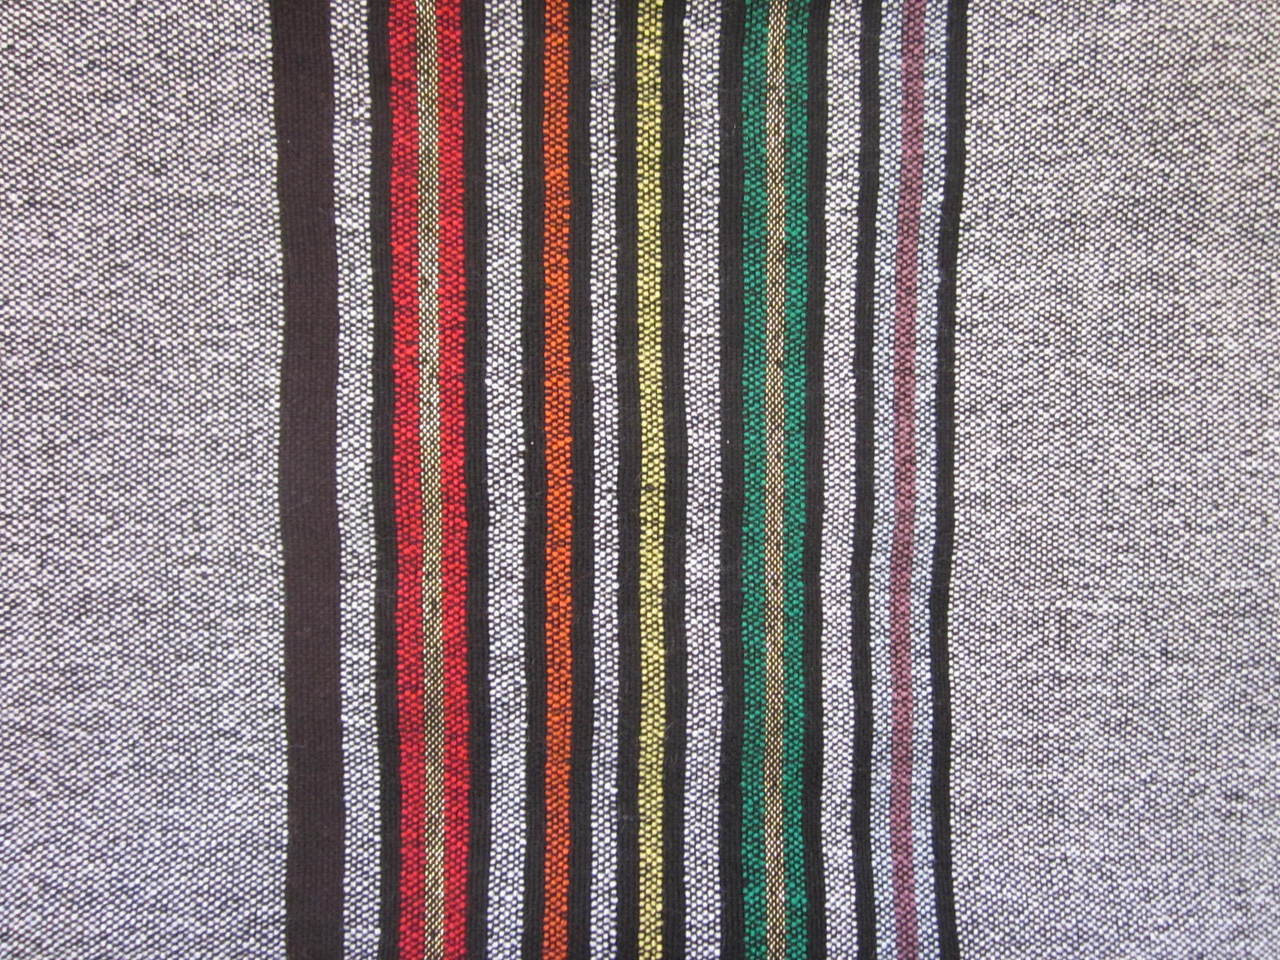 Close-up of striping